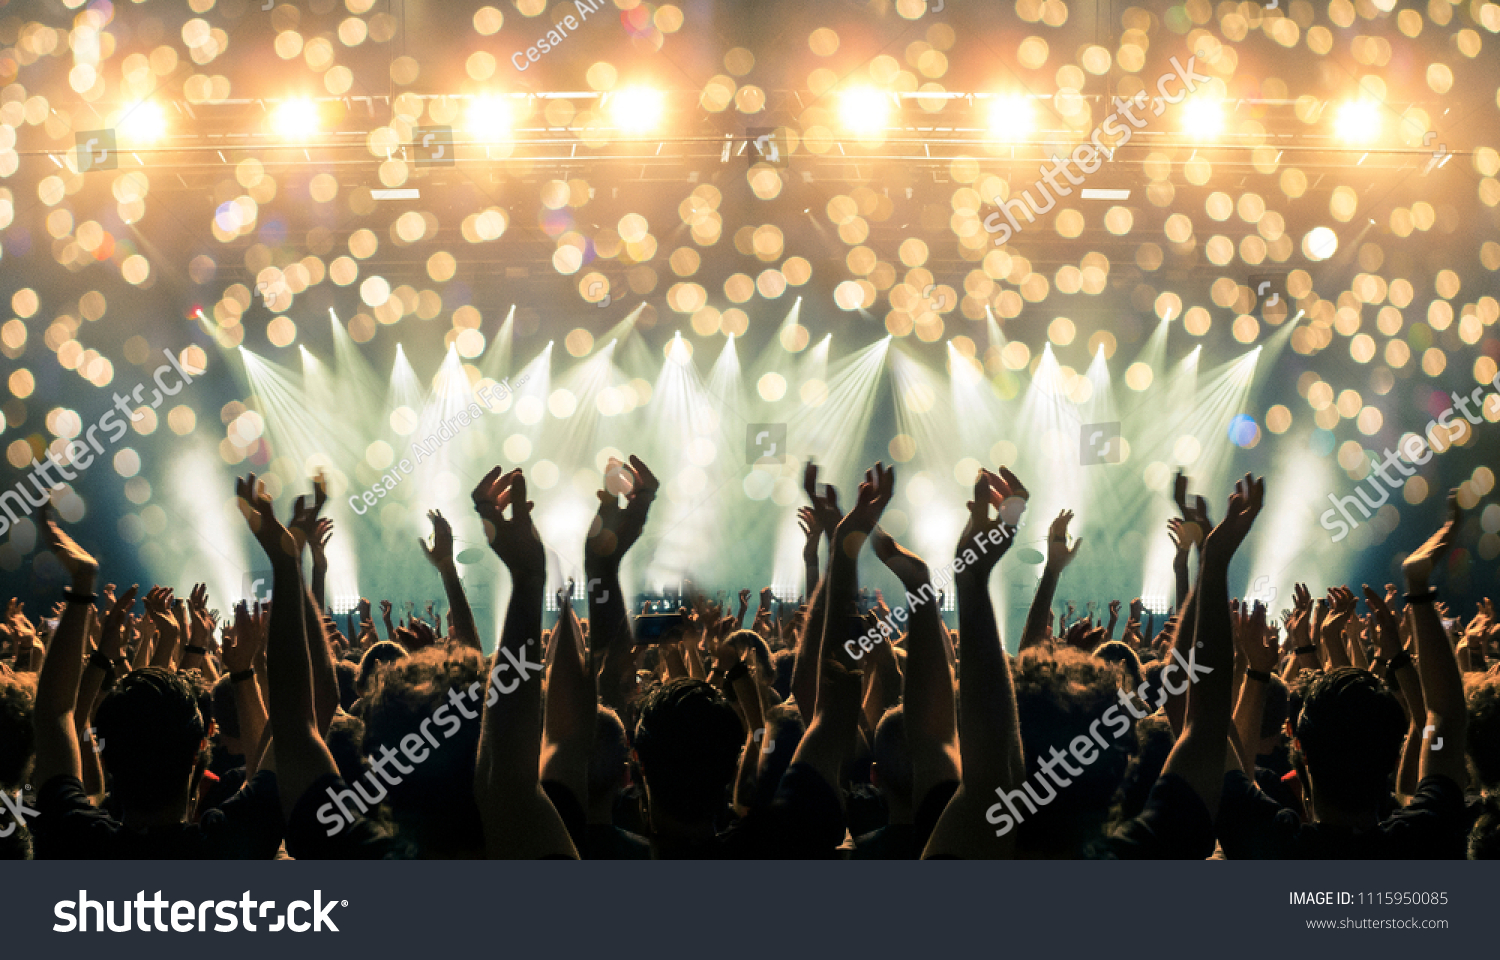 Shot inside a concert hall with crowd clapping to the stage during a performance #1115950085